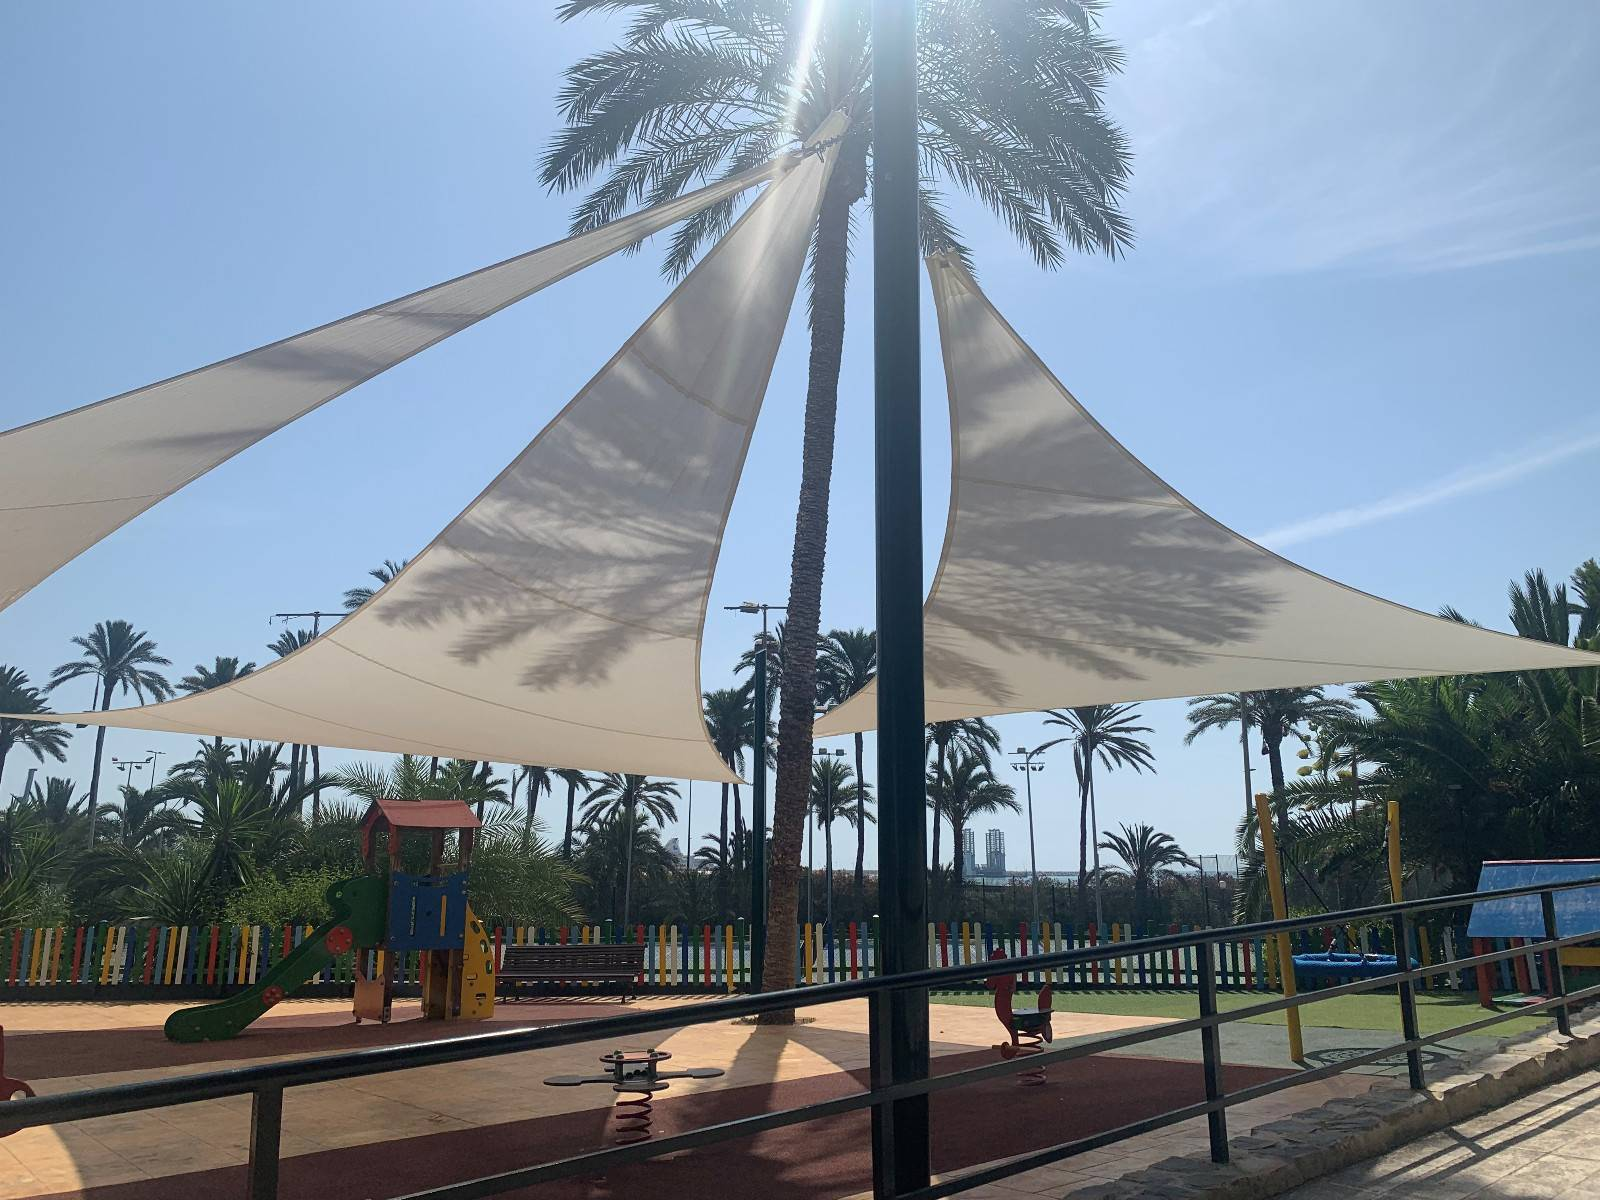 Tensioned shade sails or awning sail in a playground in the Urbanova Urbanization (Alicante).